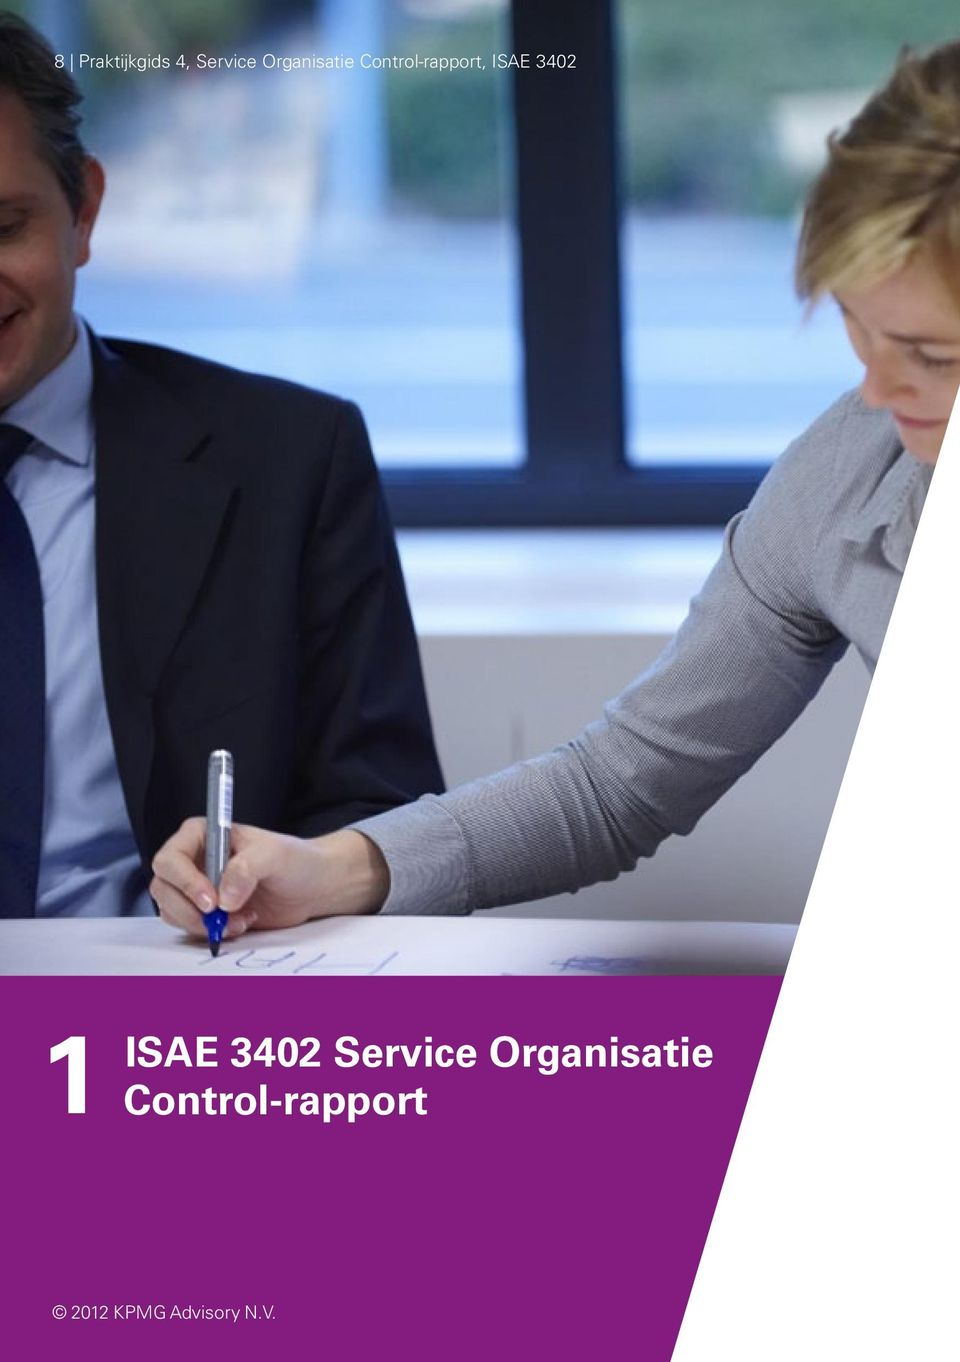 Control-rapport, ISAE 3402